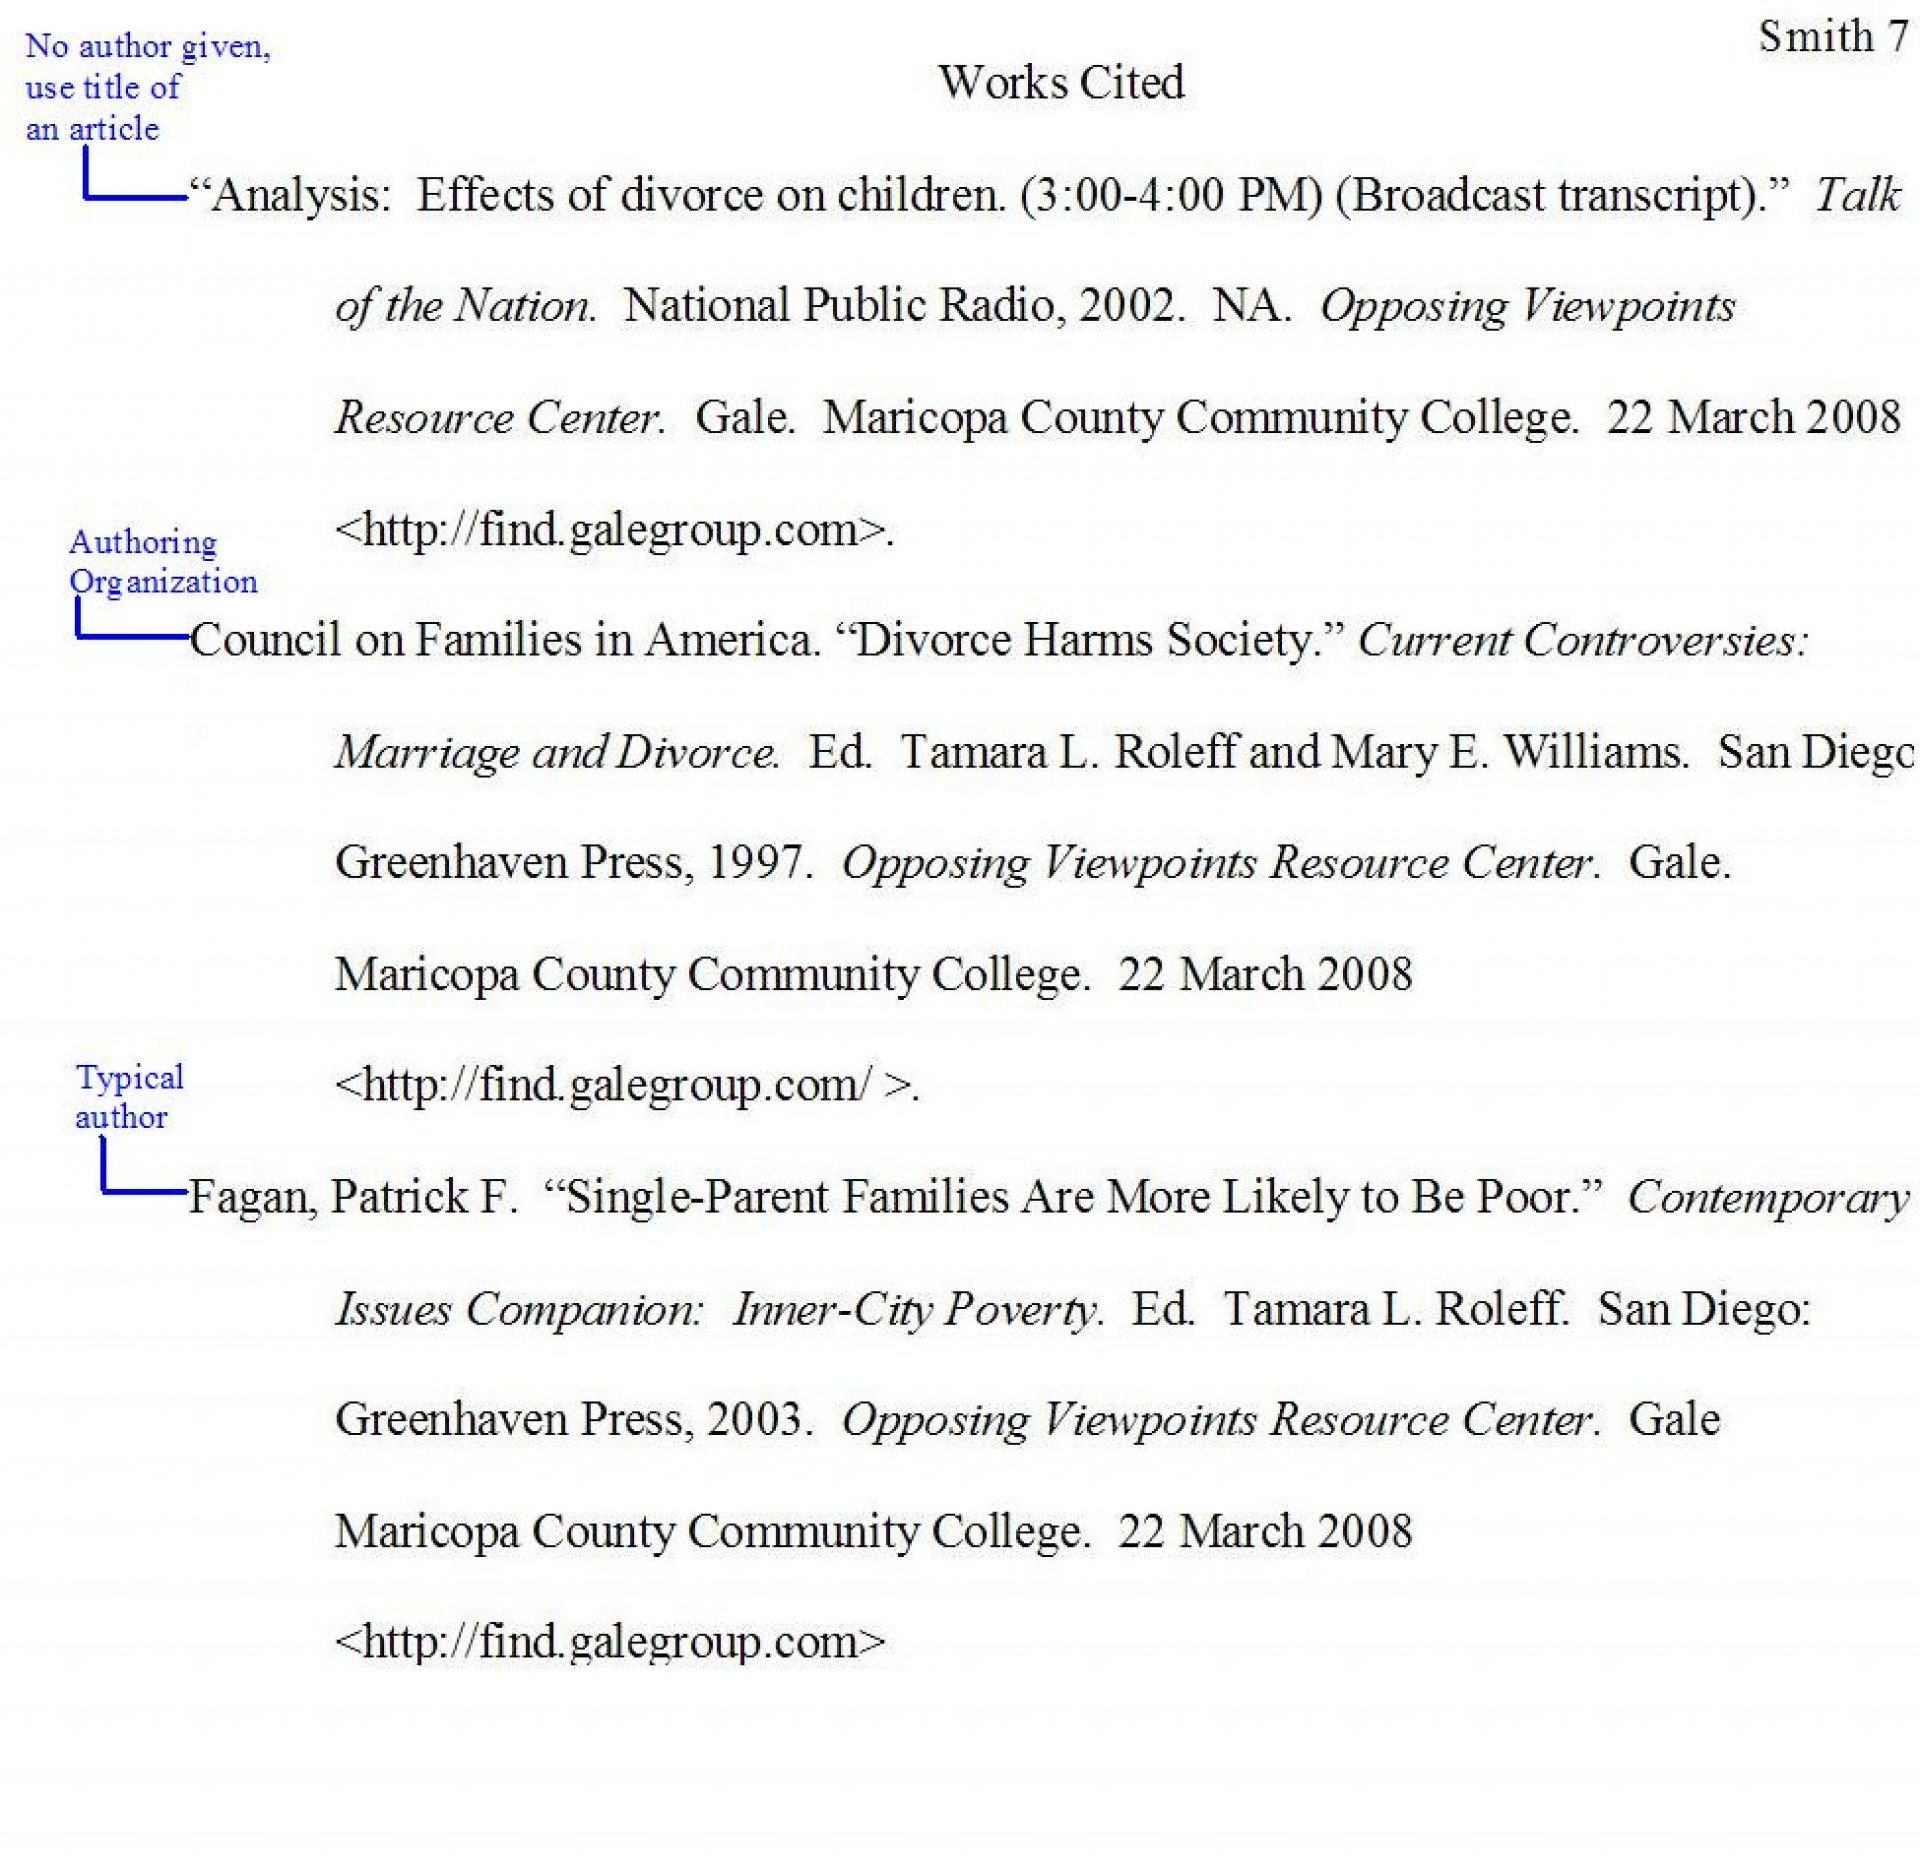 001 Essay Example Samplewrkctd Jpg Citing Sources In Phenomenal An Argumentative Expository College 1920